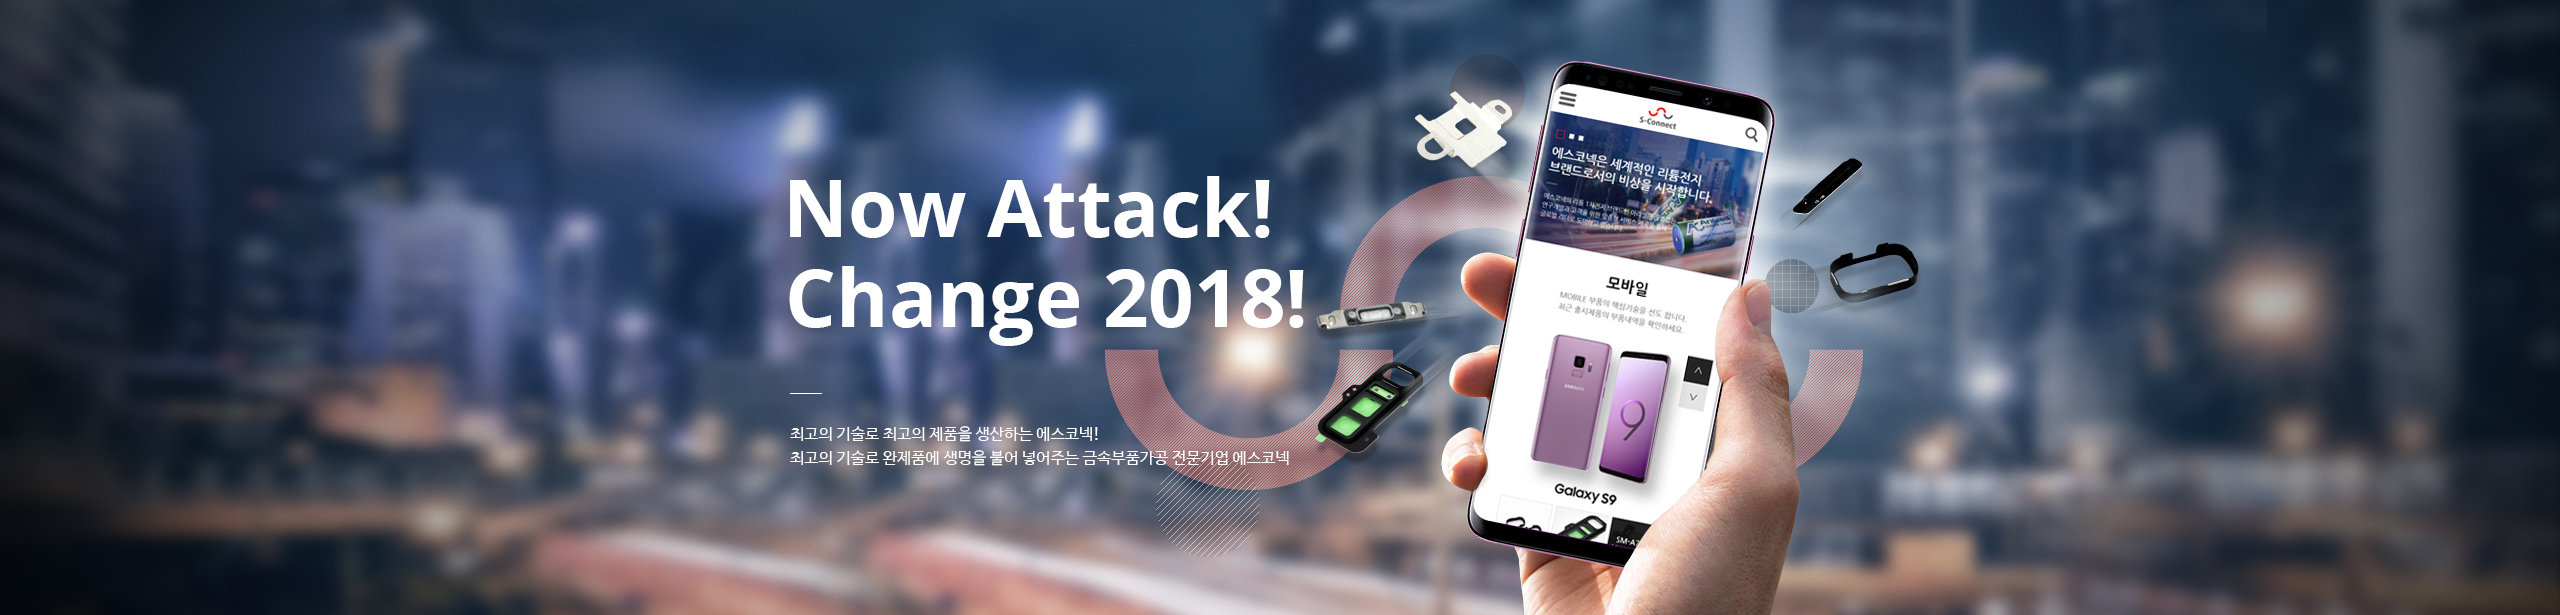 Now Attack! Change 2018!